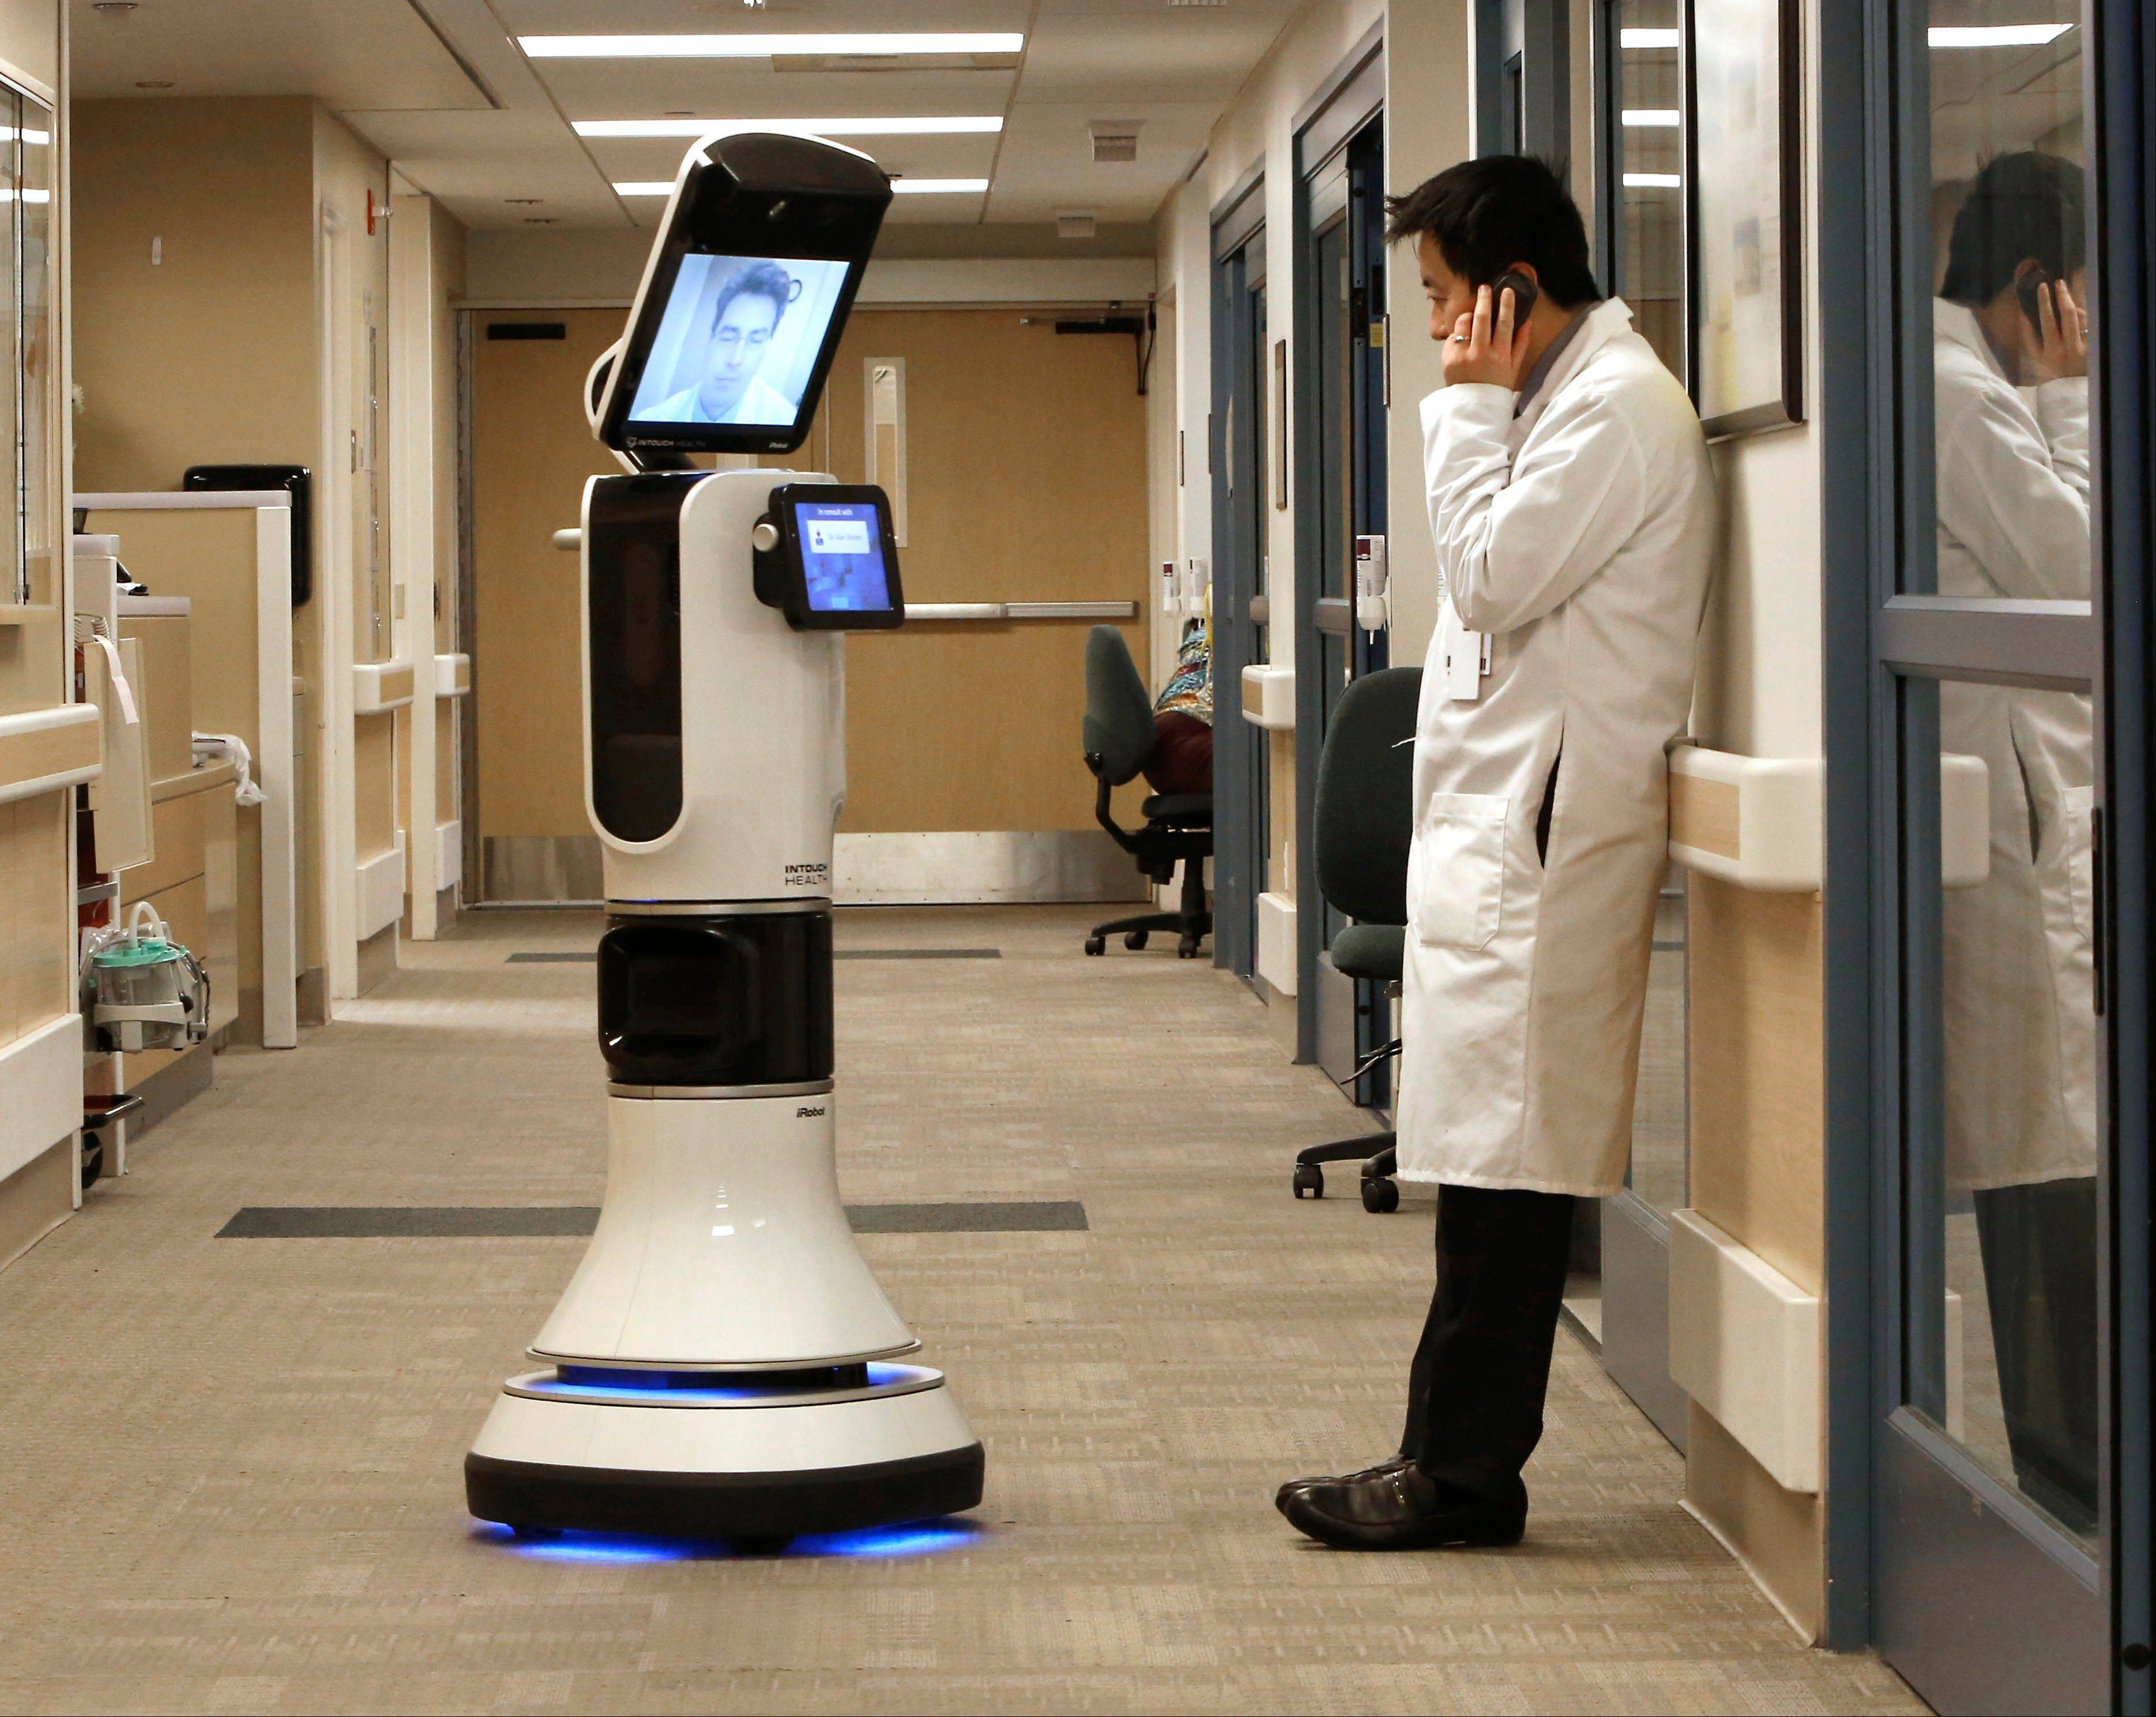 Dr. Alan Shatzel, medical director of the Mercy Telehealth Network, on the monitor RP-VITA robot as he waits to confer with Dr. Alex Nee at Mercy San Juan Hospital in Carmichael, Calif.